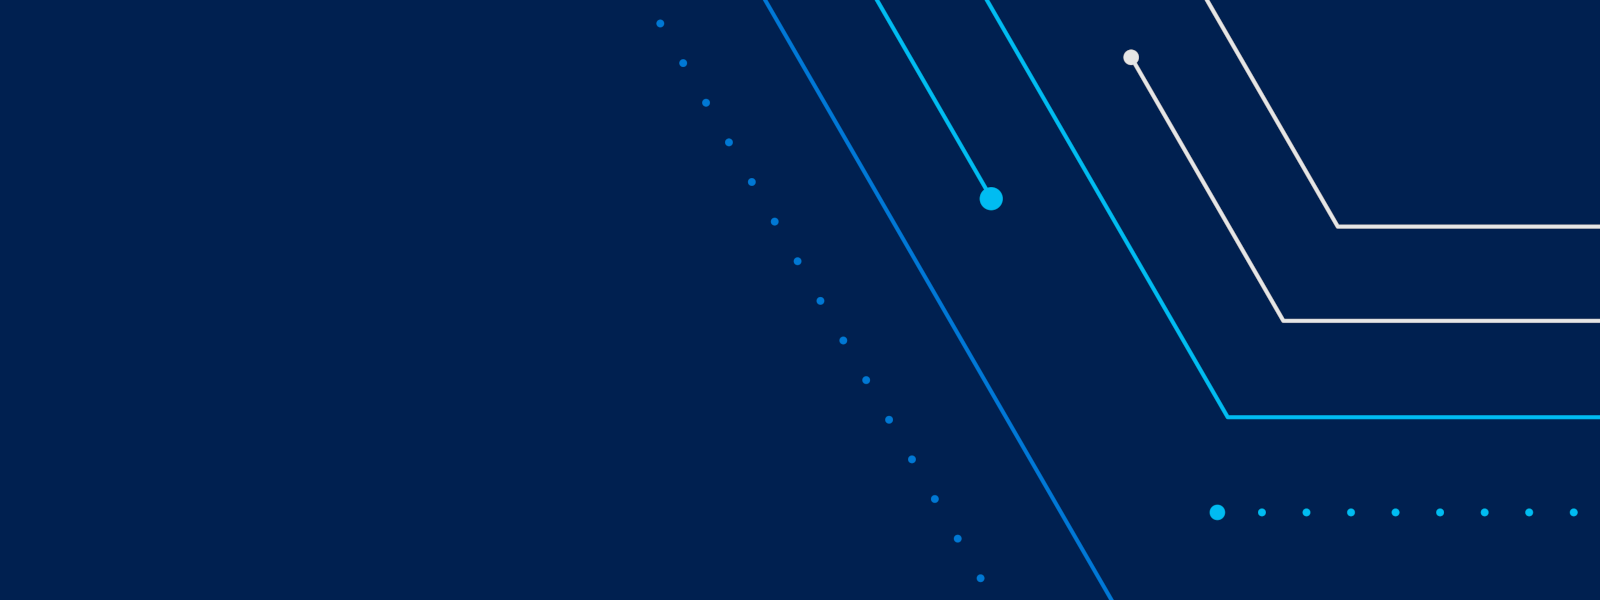 Illustration of blue solid and dotted lines on a dark blue background